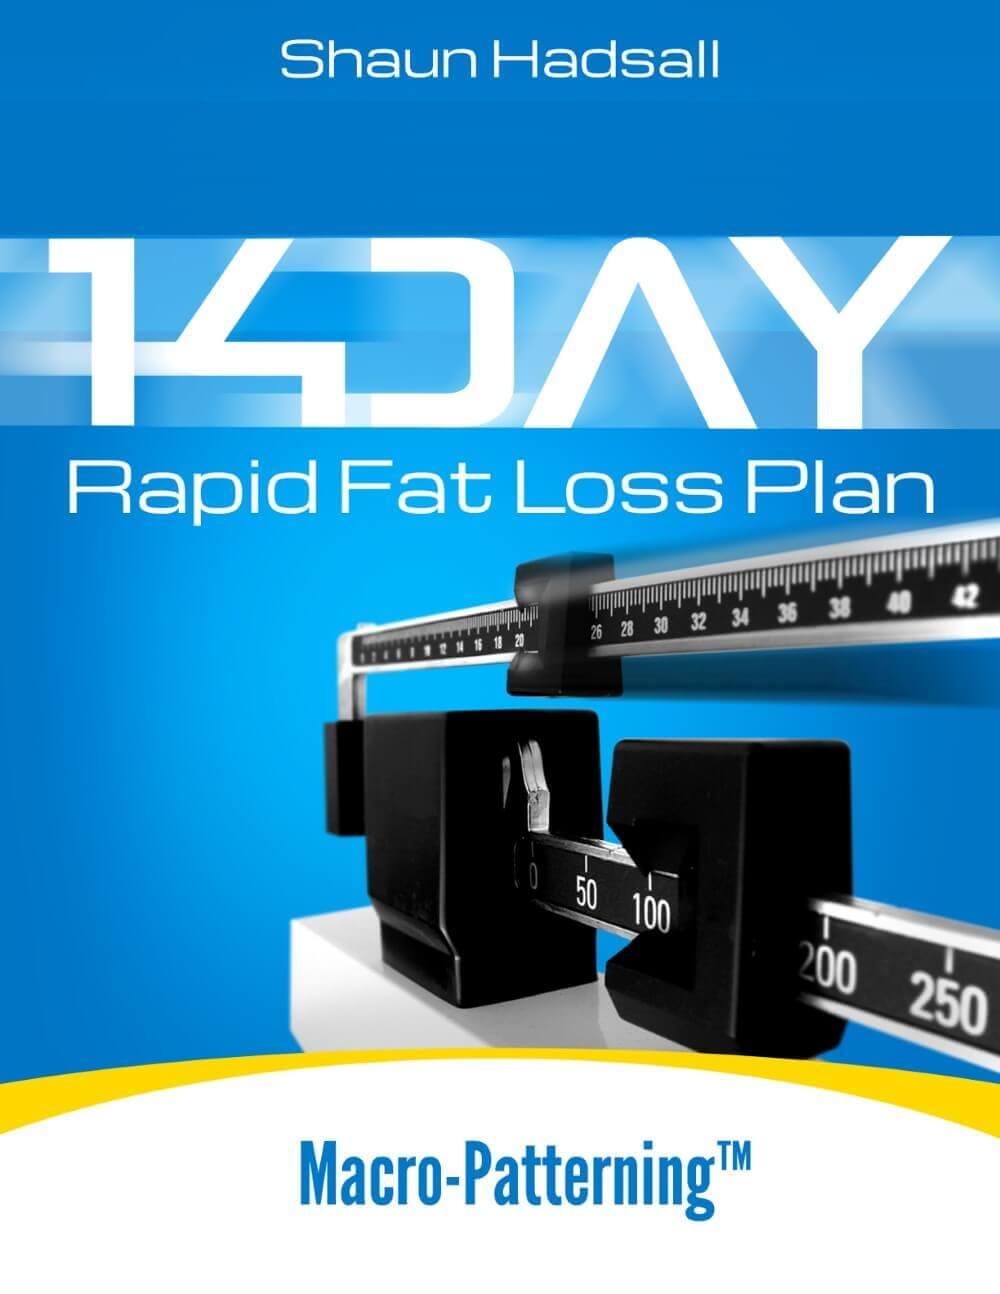 14 day rapid fat loss plan logo